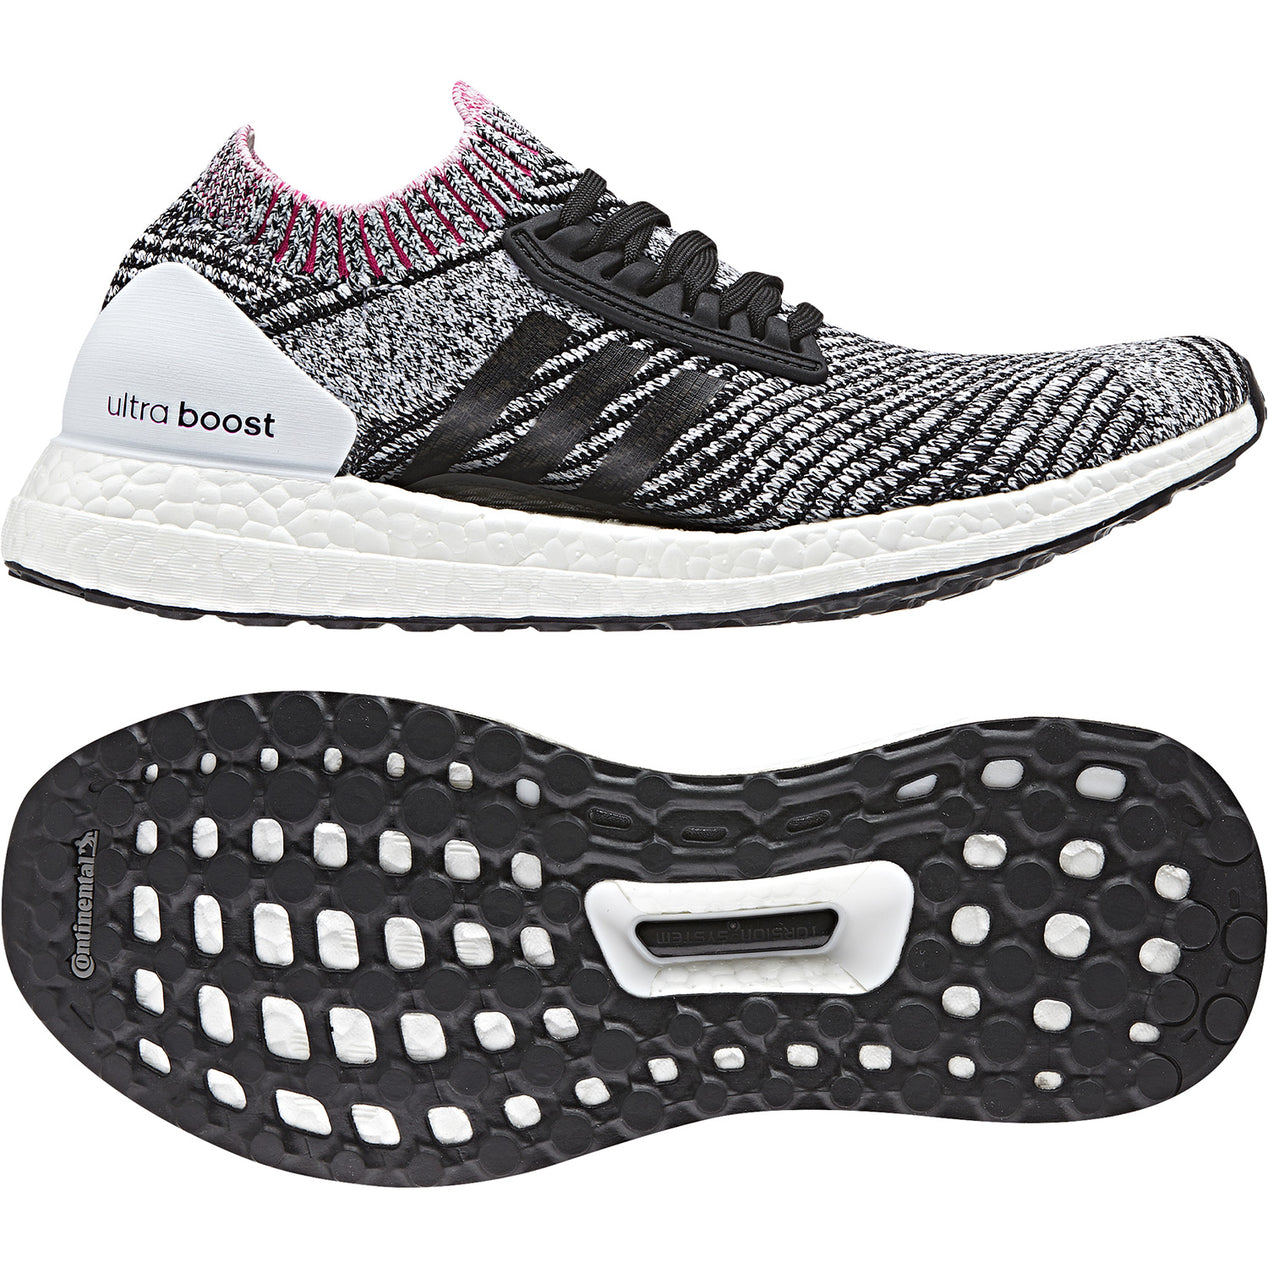 bba34b5d3 Adidas Ultraboost X Running Shoes - Women's | Altitude Sports